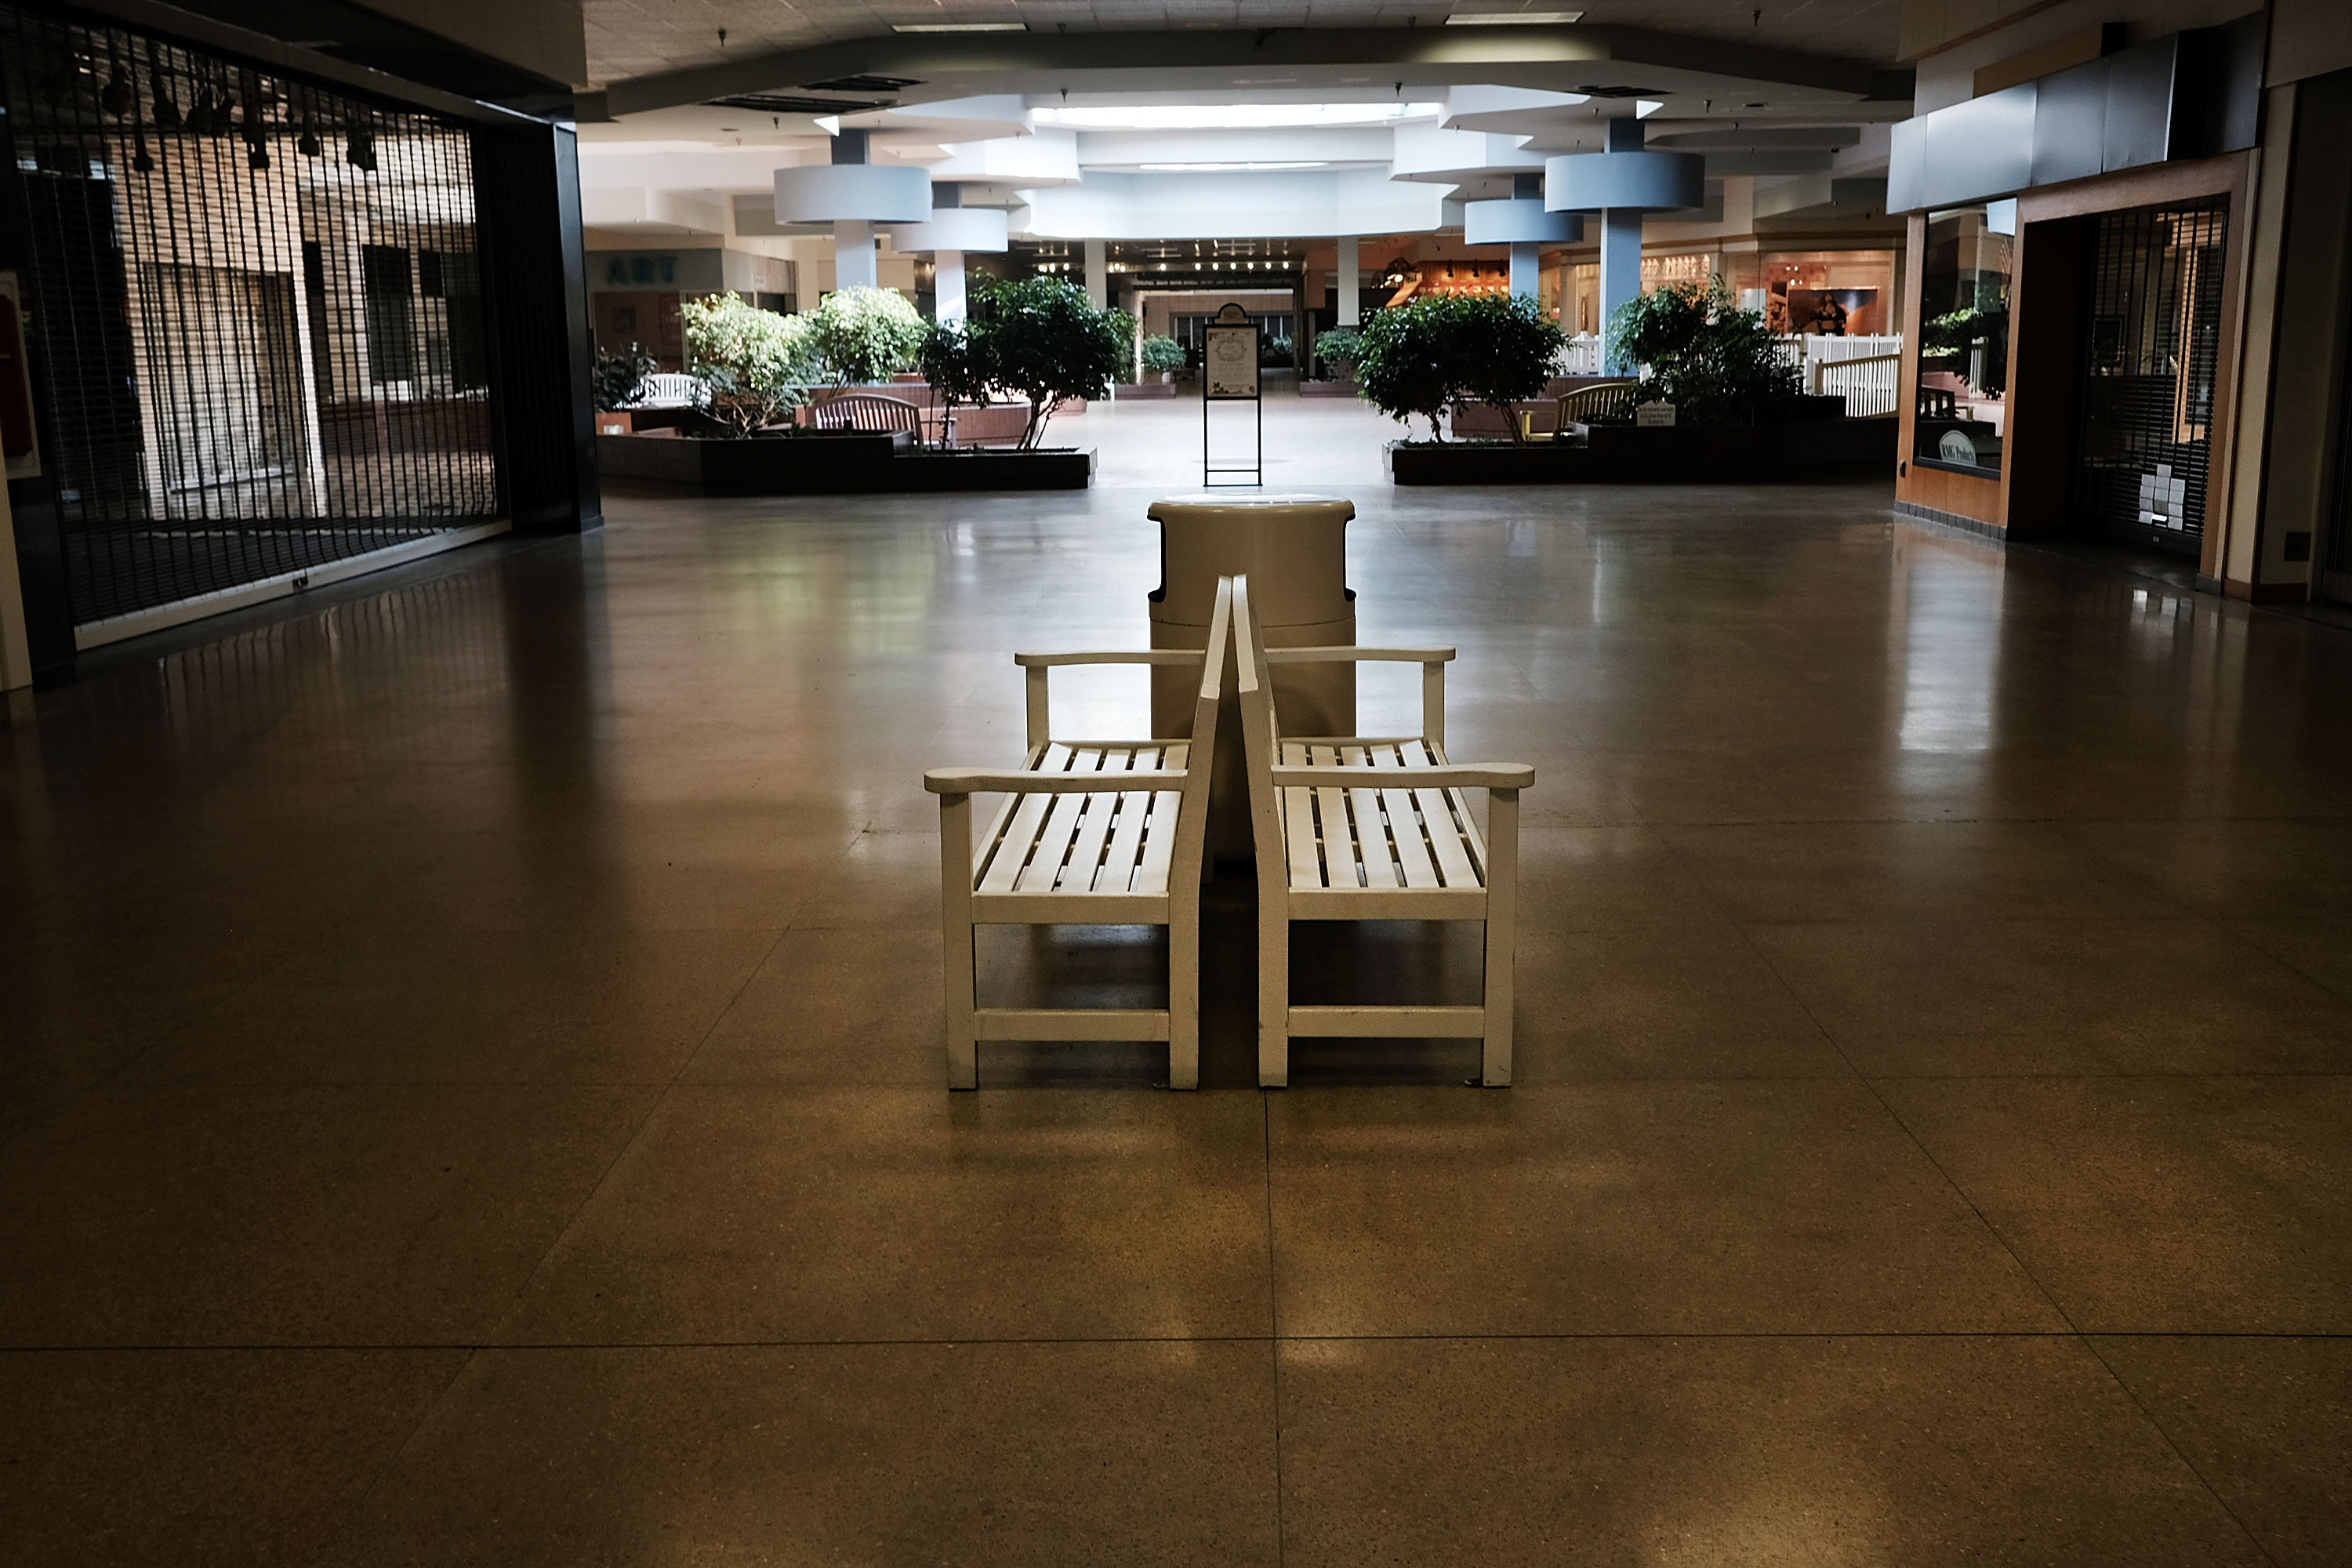 Dead and dying malls of Pennsylvania, updated: More shopping centers are bleeding retailers